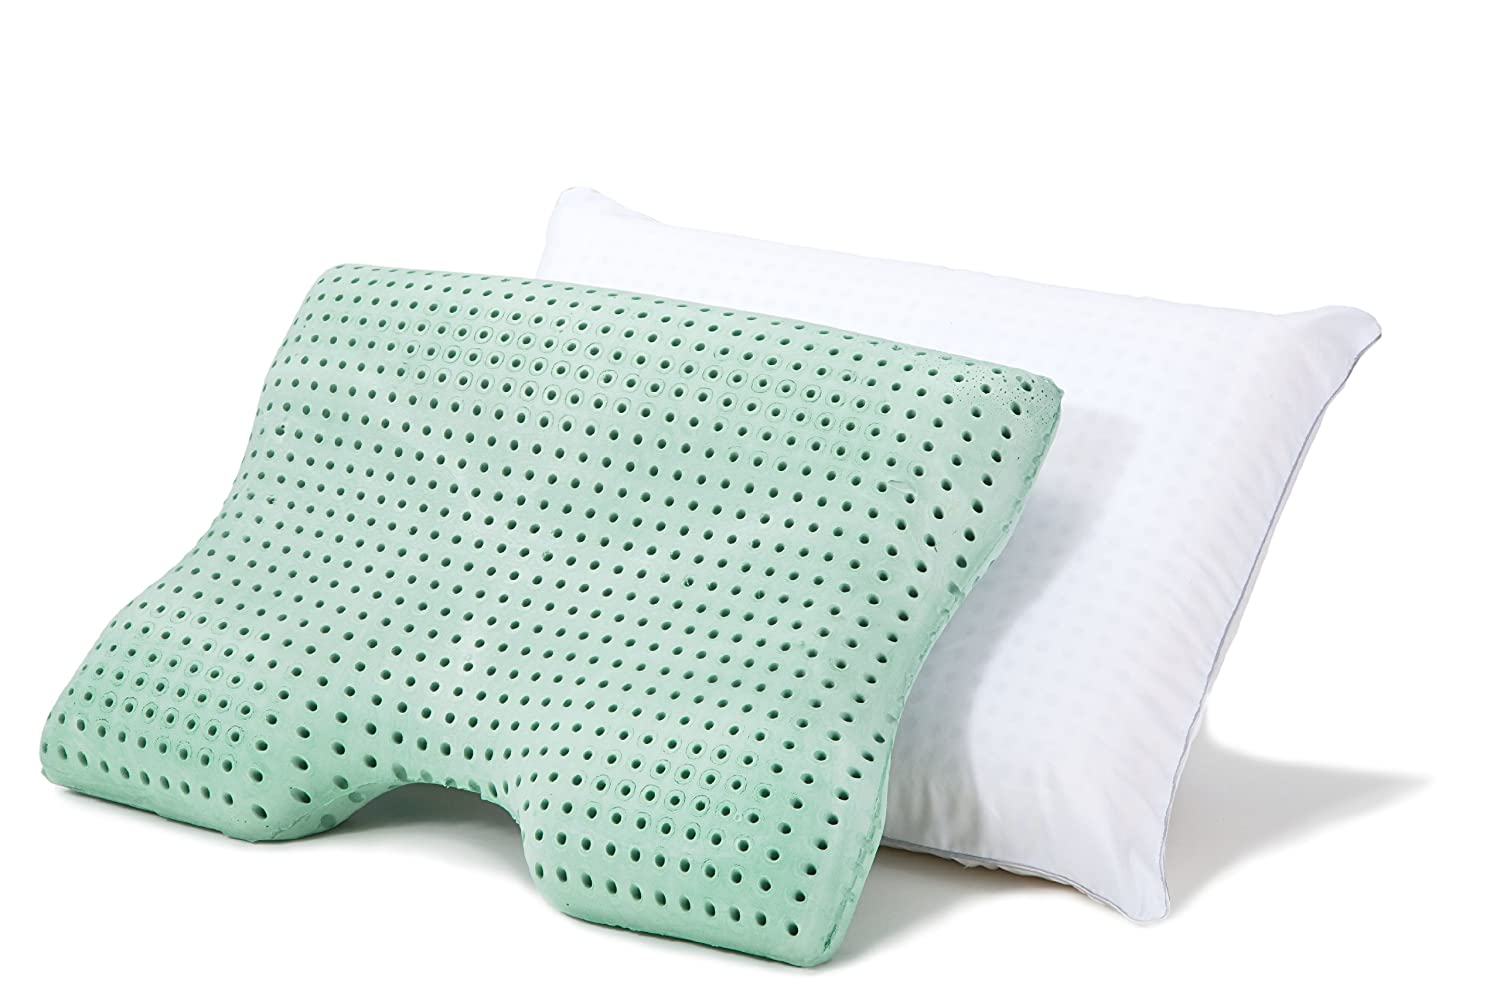 Amazoncom SleepJoy ViscoFresh Advanced Contour Memory Foam Pillow